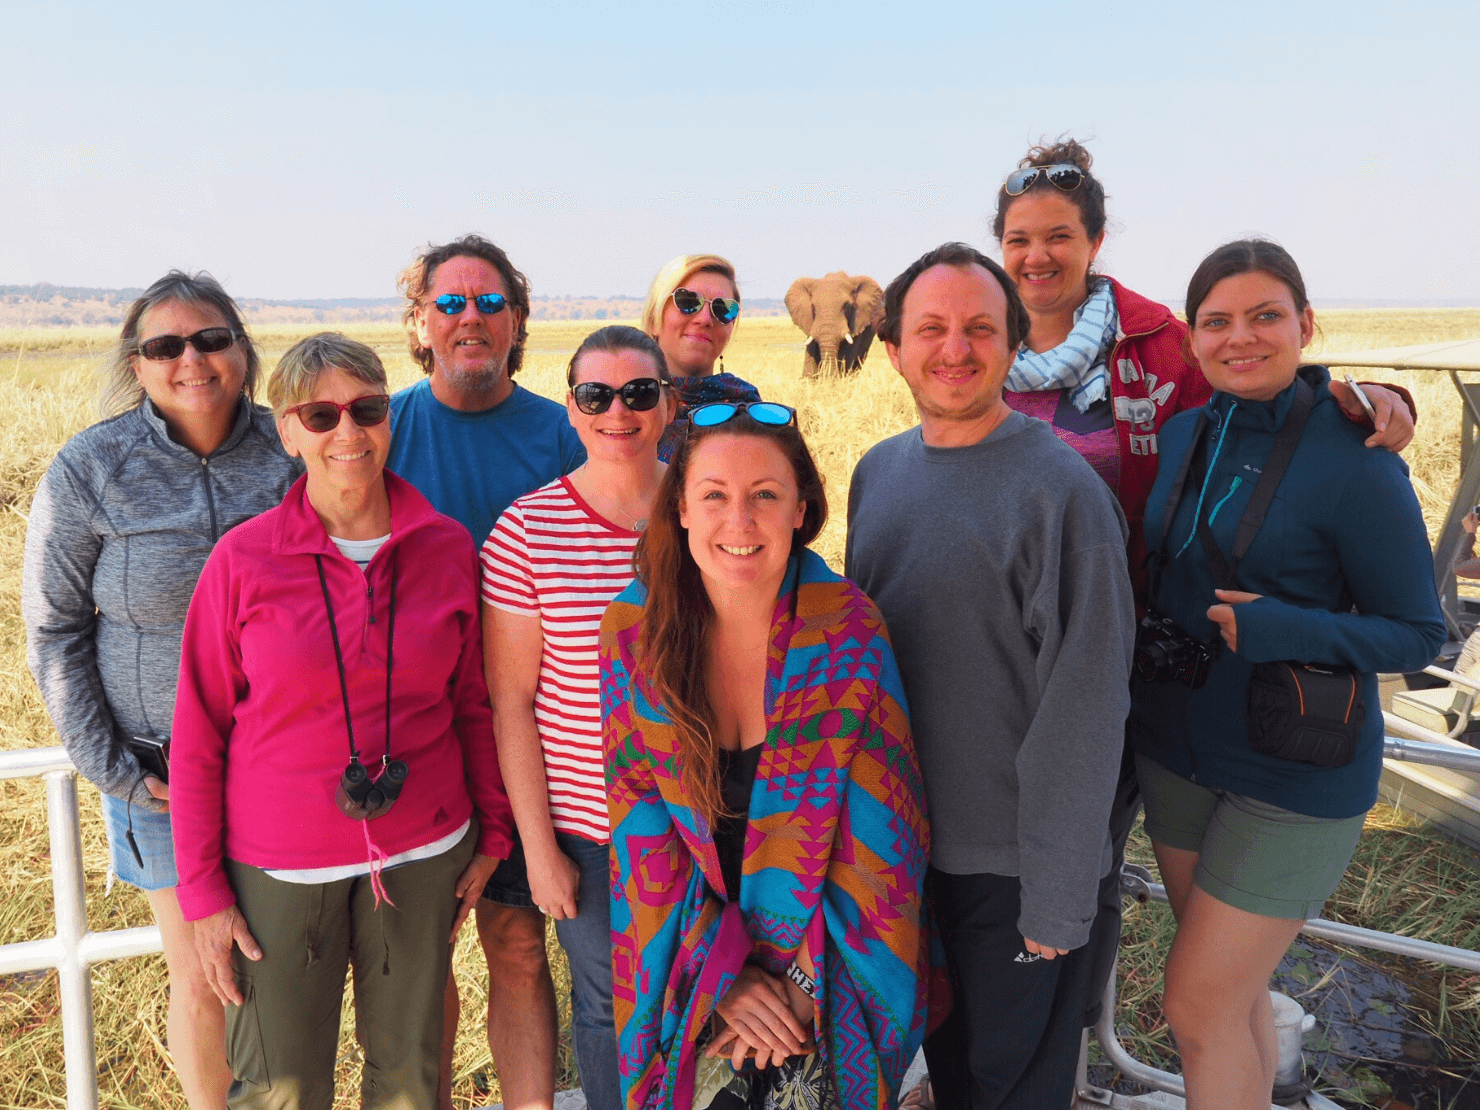 Rock My Adventure - Small Group Africa Tours (2020 dates announced